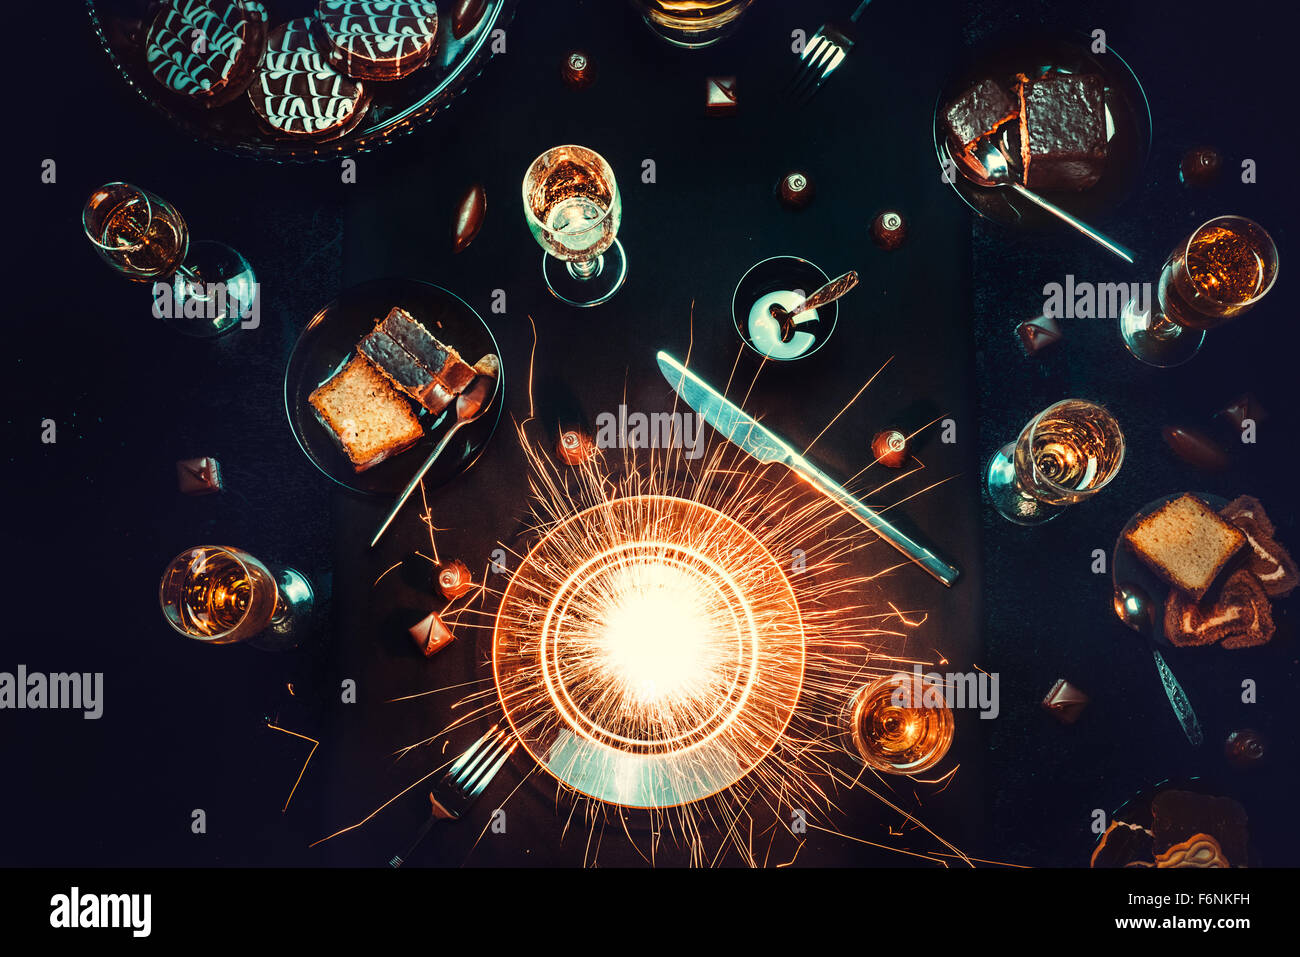 Supernova on my plate - Stock Image